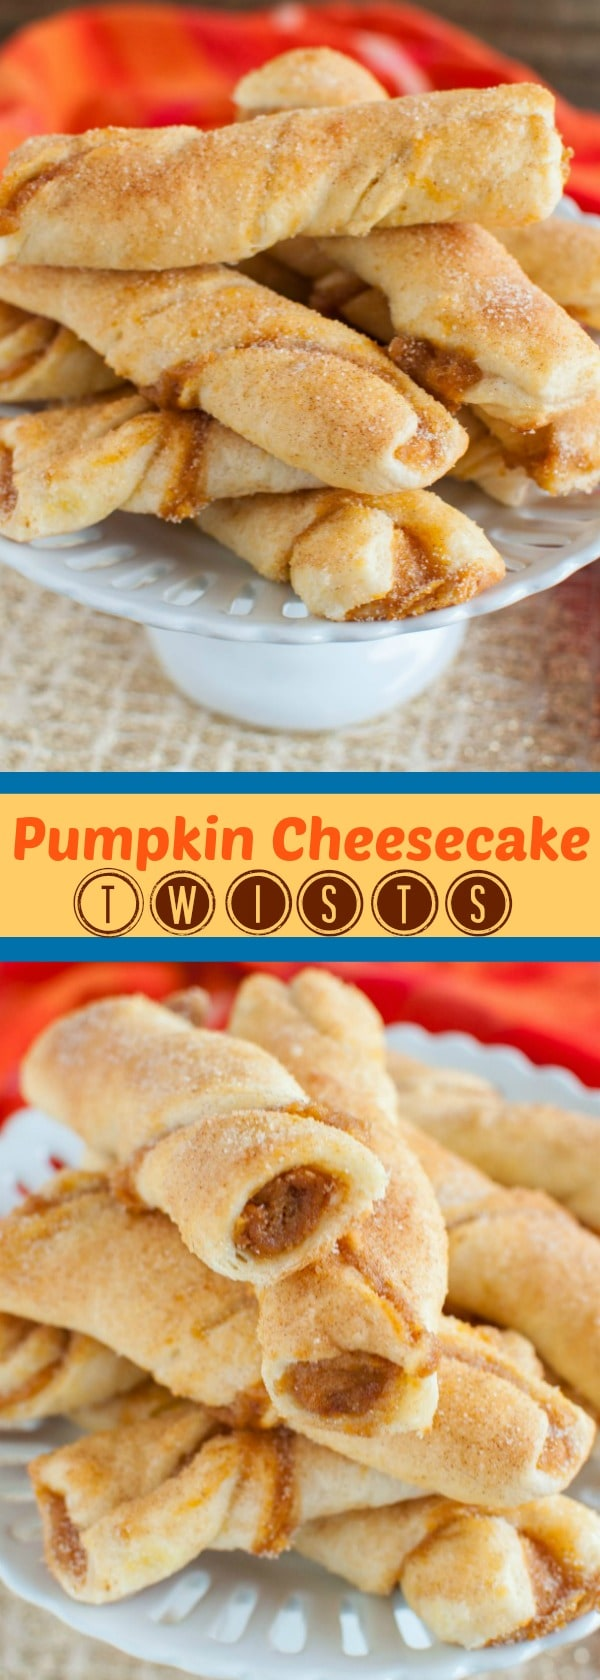 Pumpkin Cheesecake Twists are such a delicious treat, you won't believe how easy they are to make! The cinnamon sugar coating makes them irresistible!